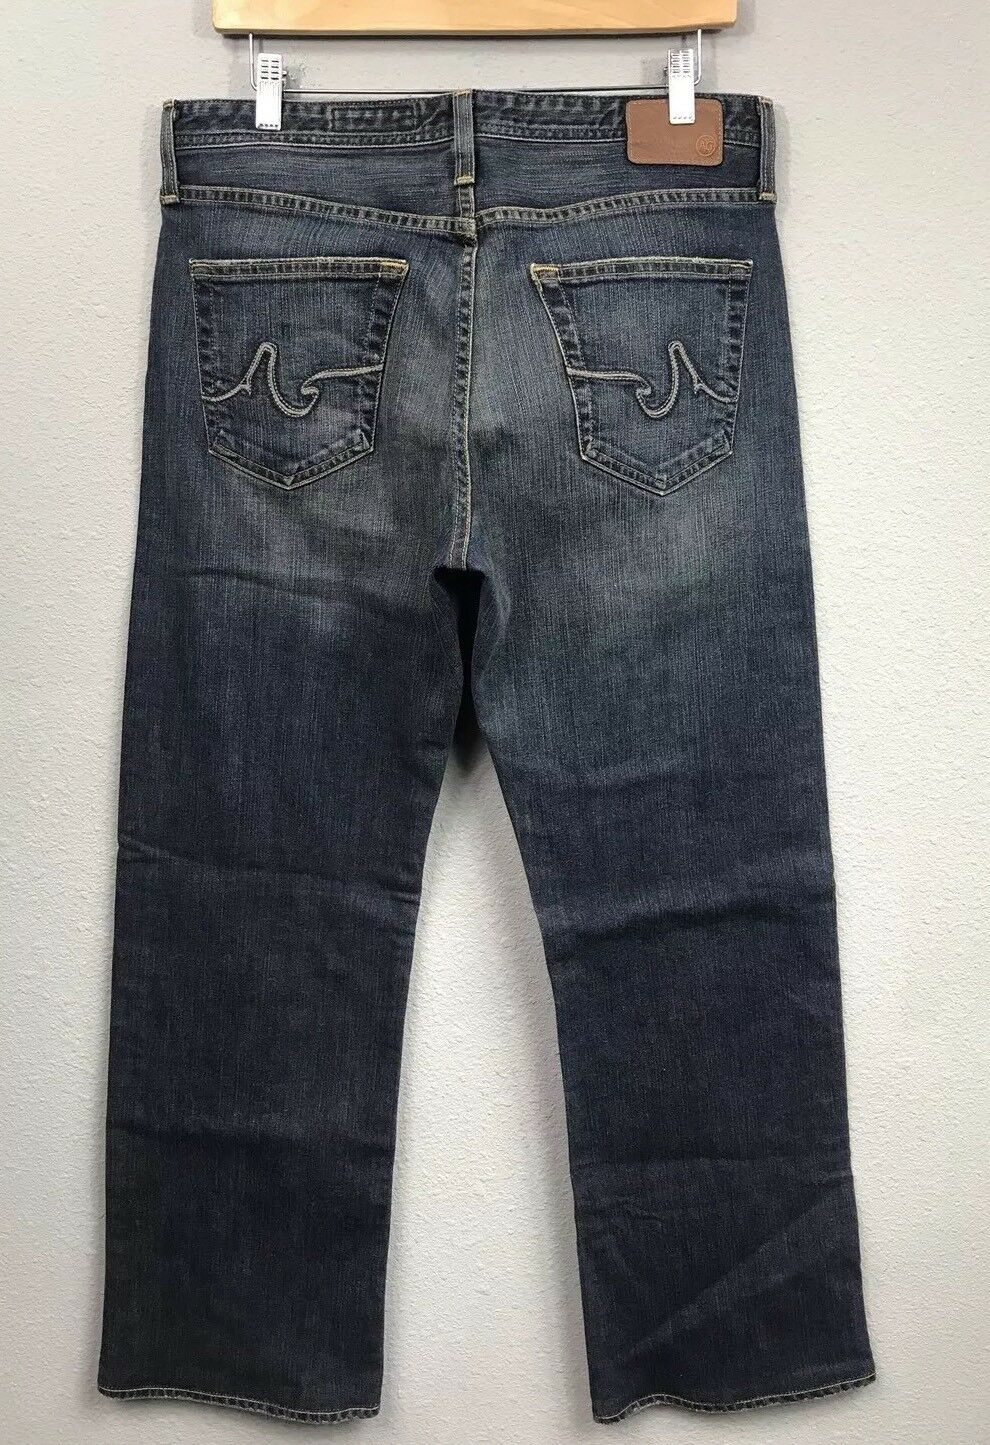 RARE Adriano goldschmied AG The Hero Relaxed Straight Jeans 32x31